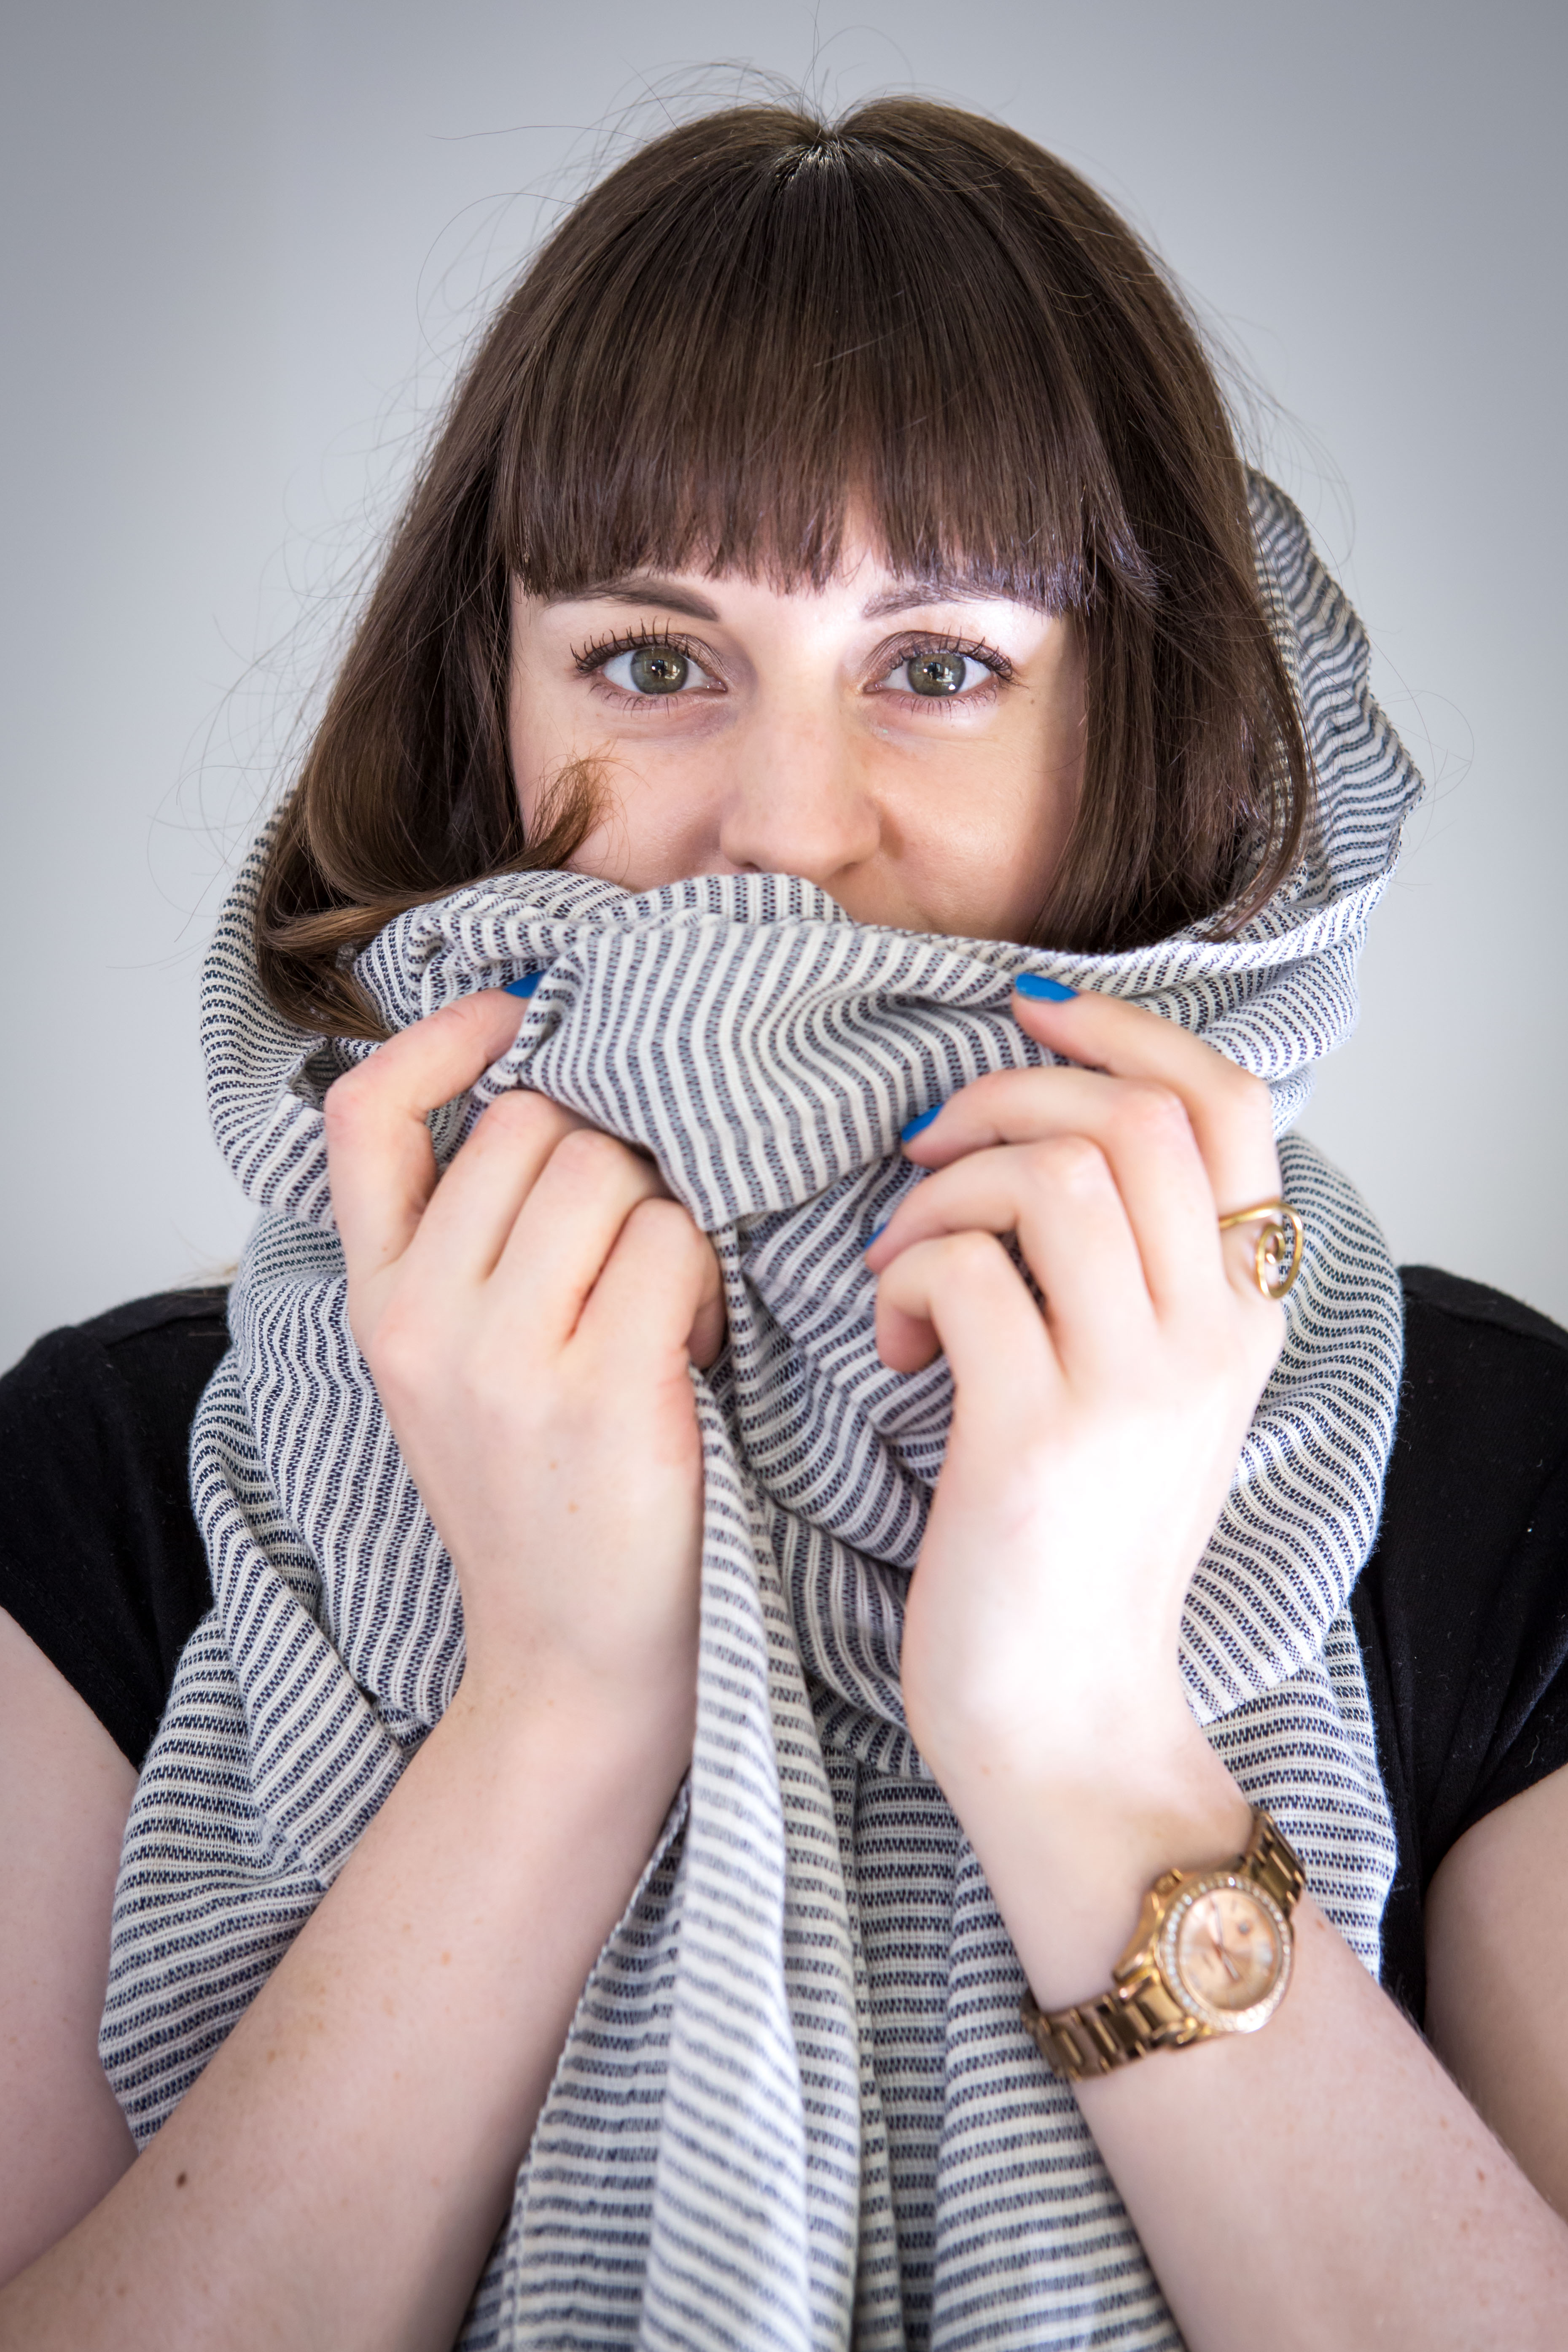 People with asthma say wearing a scarf over their mouth and nose and keep asthma attacks at bay